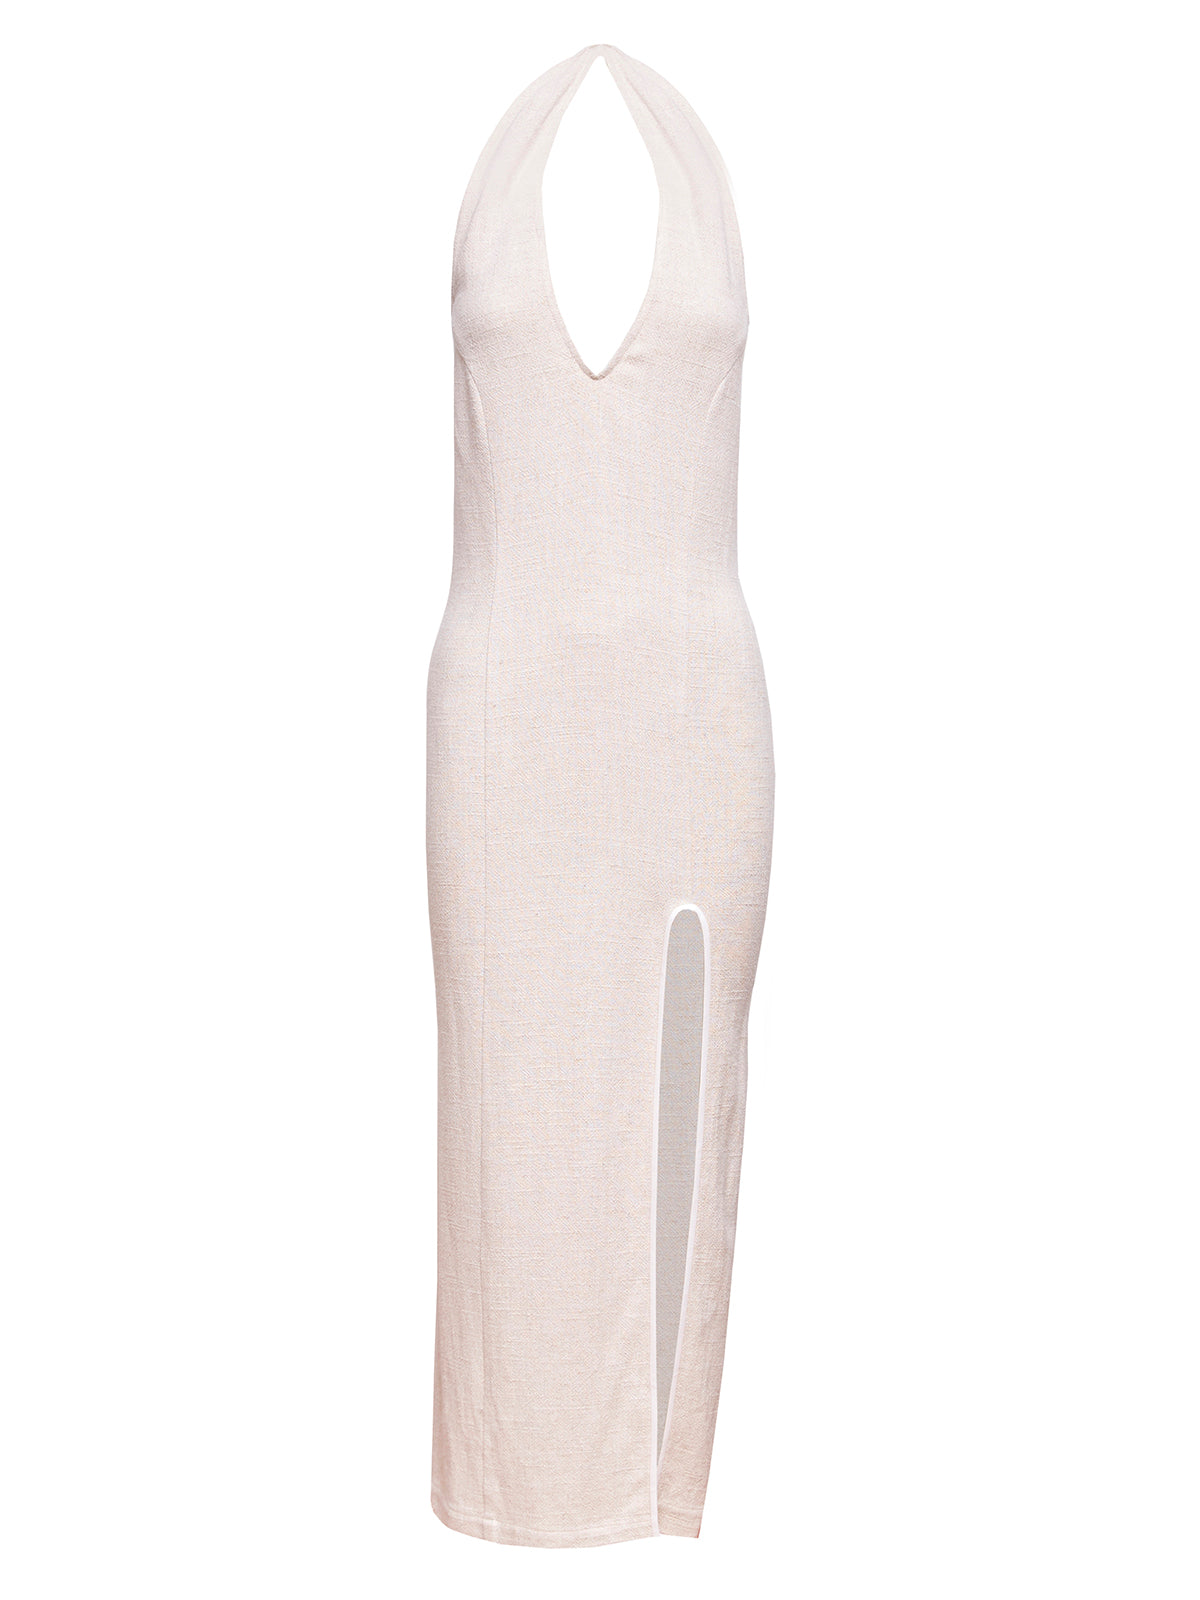 RODRIGUEZ DRESS | NUDE